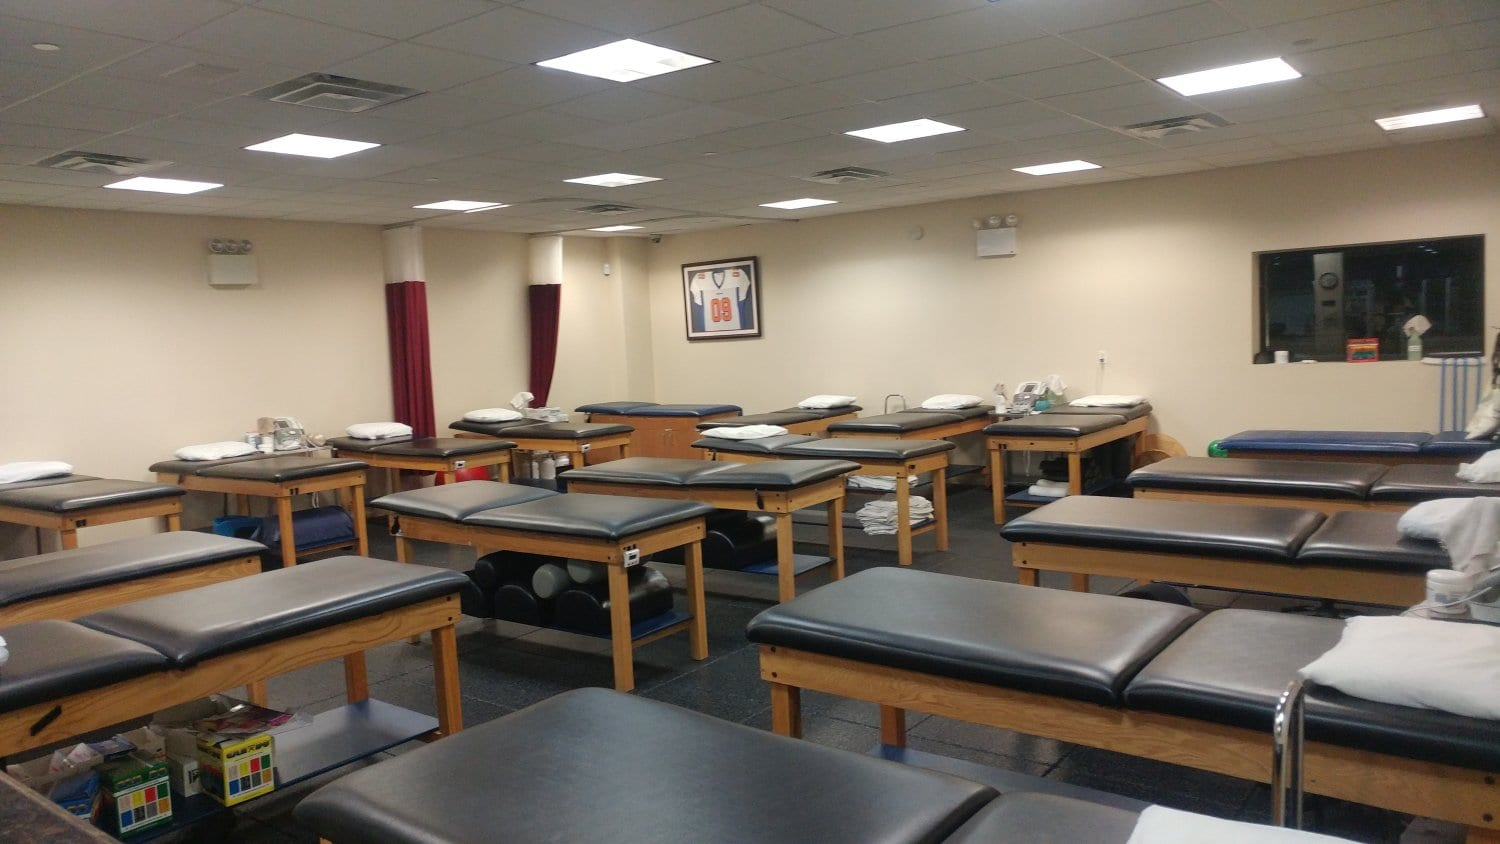 An image of clean, well maintained stretch beds at our physical therapy clinic in Bayside Whitestone, New York.